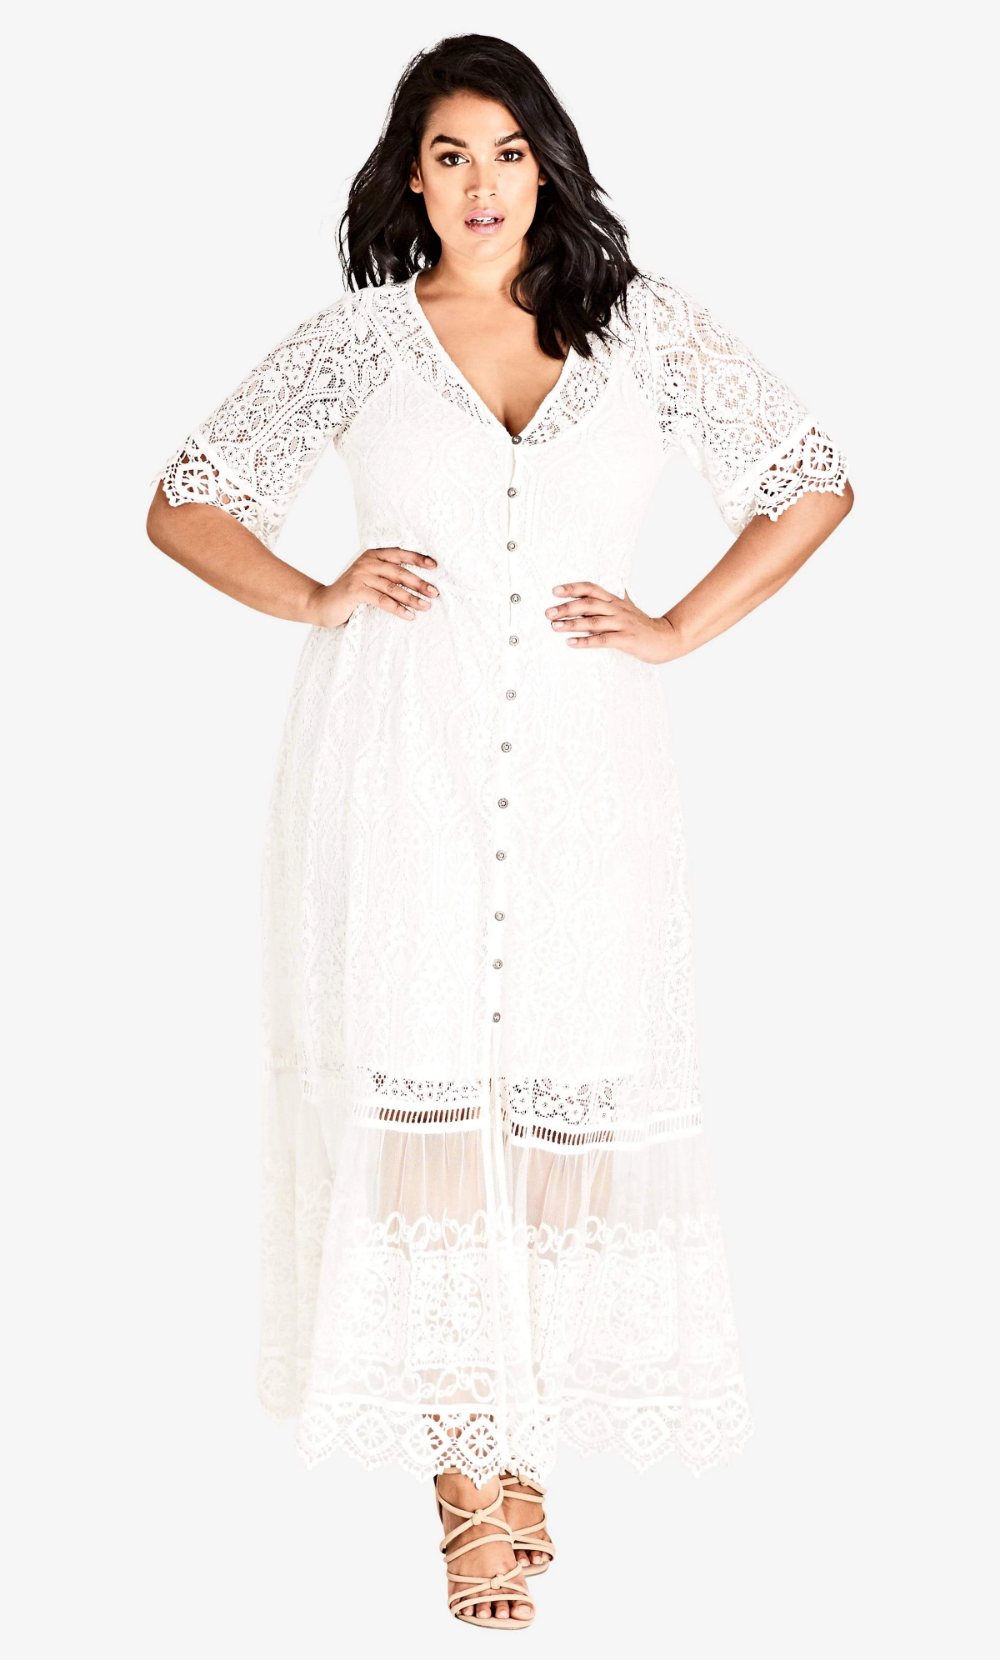 Ivory Summer Lace Maxi Dress Coedition Maxi Dress Plus Size Maxi Dresses Lace Maxi [ 1660 x 1000 Pixel ]